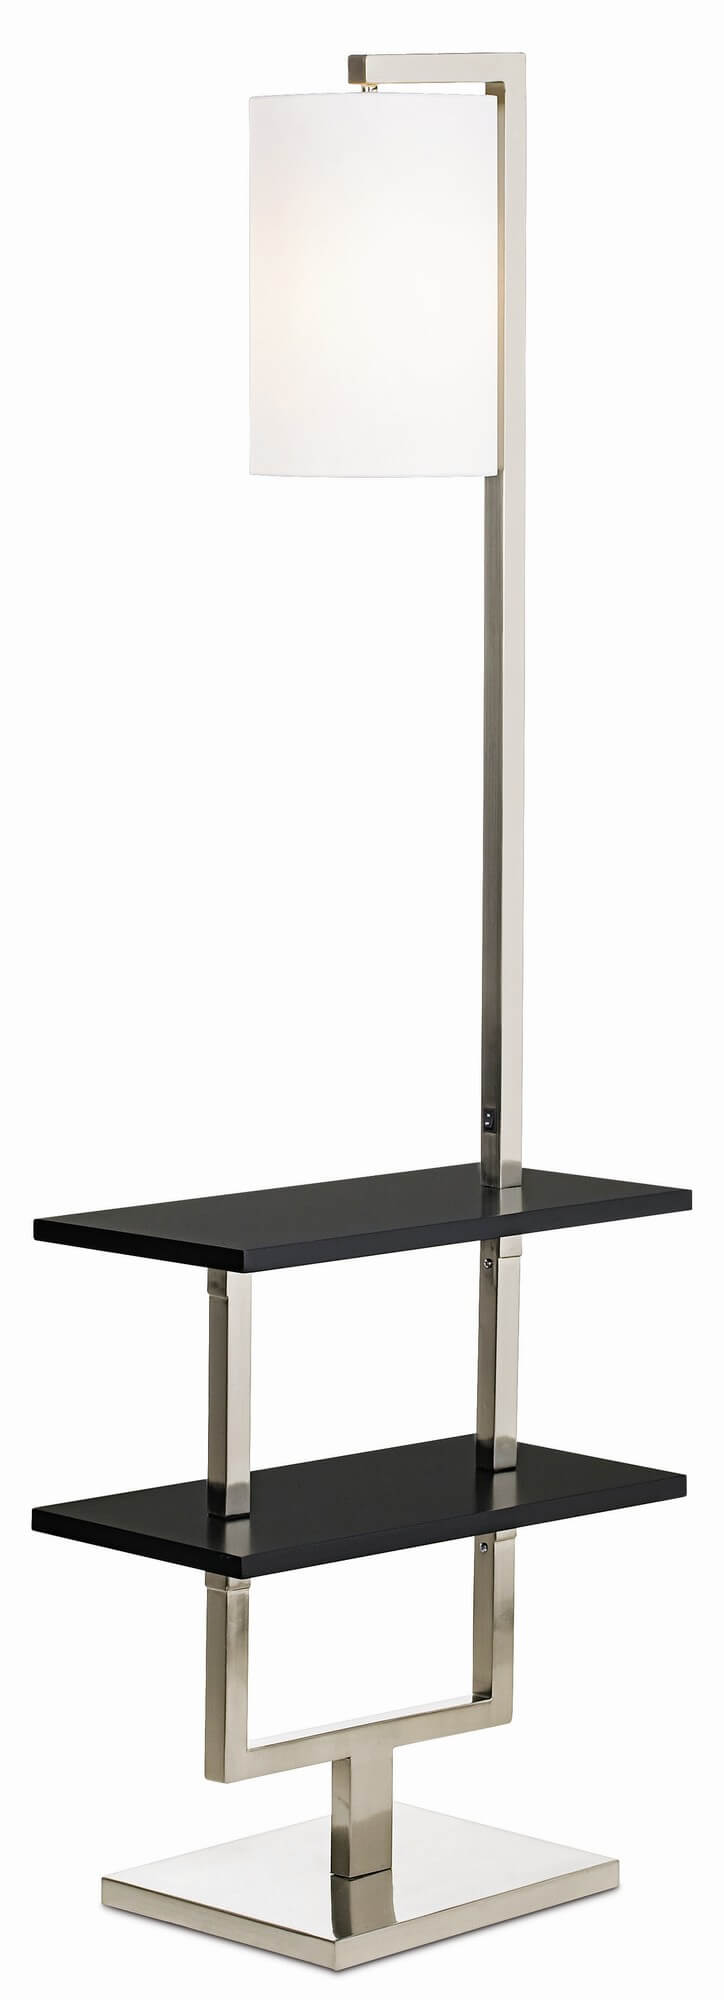 Our second table design floor lamp features a combination brushed nickel and steel frame, with two-tiered table in black.